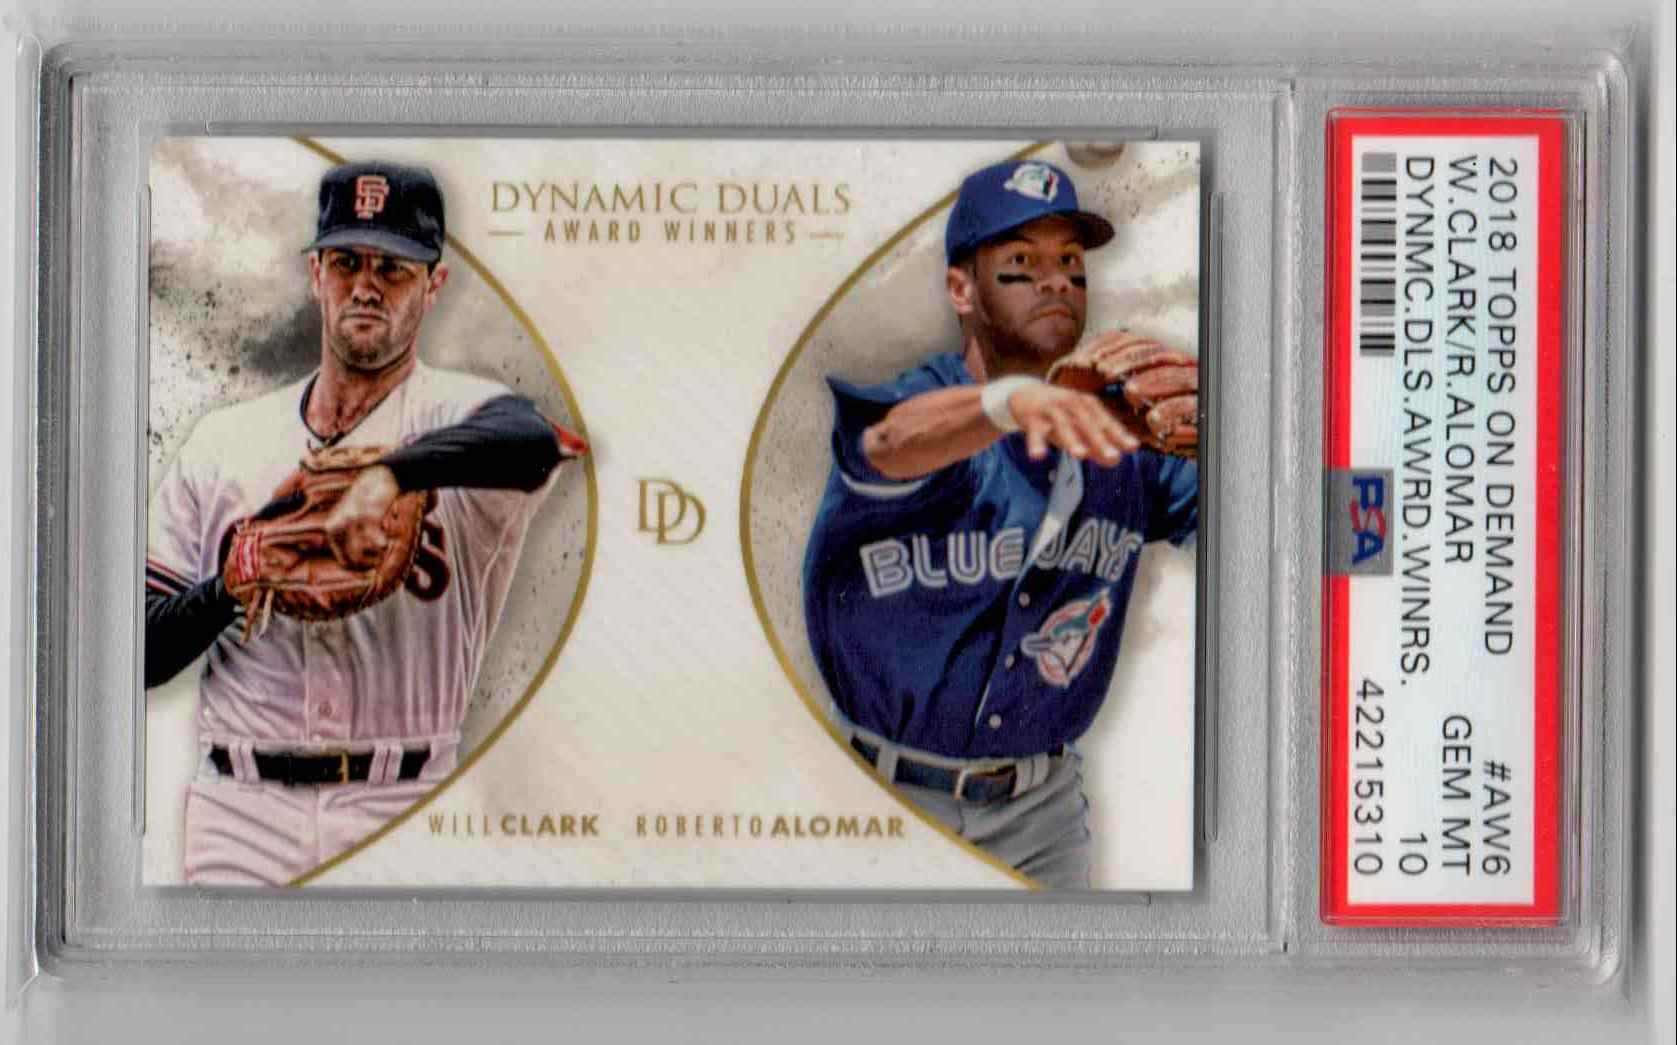 2018 Topps On-Demand Dynamic Duals Award Winners Will Clark / Roberto Alomar #AW6 card front image